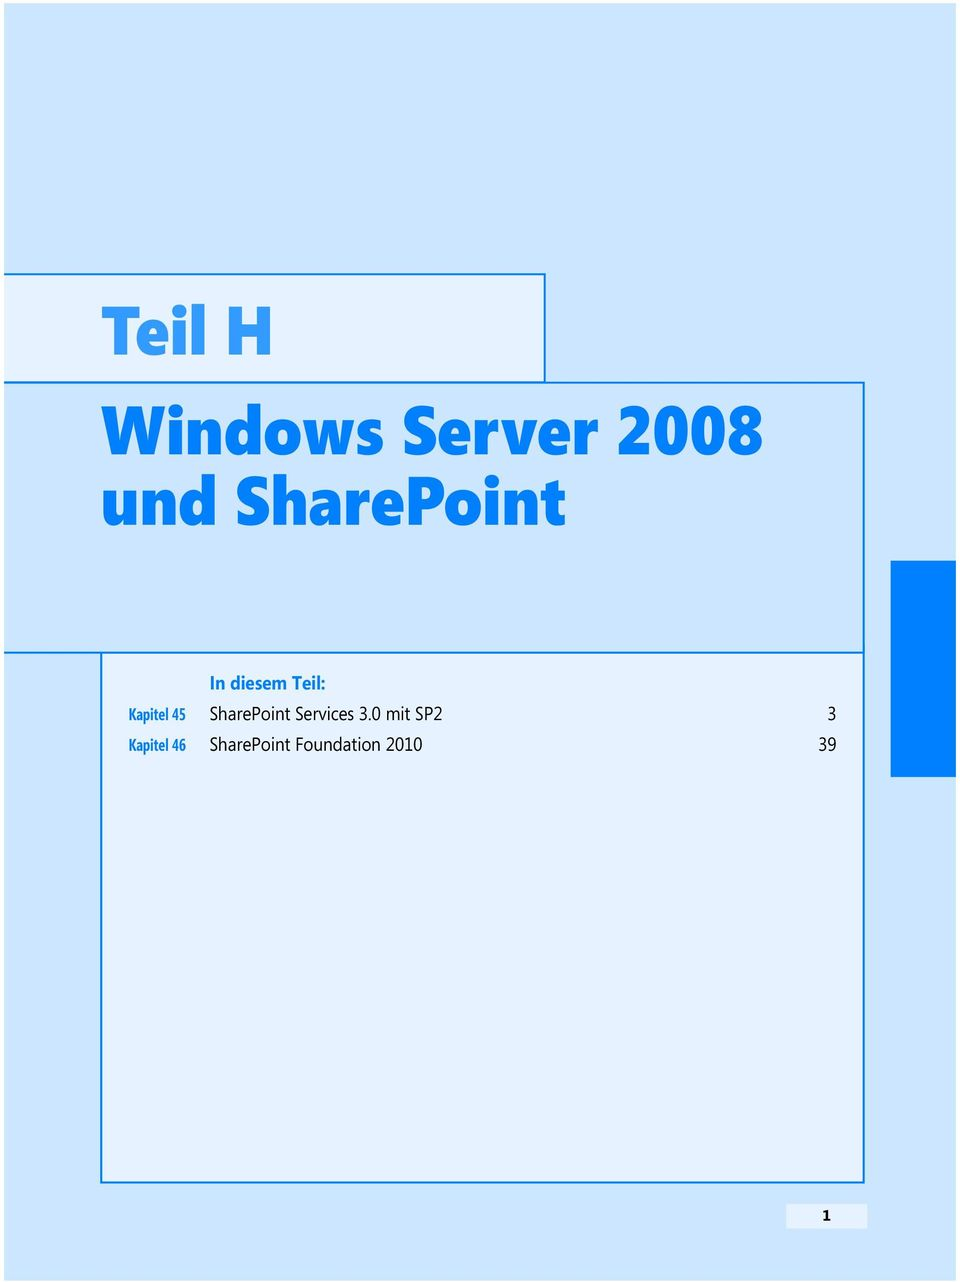 45 SharePoint Services 3.